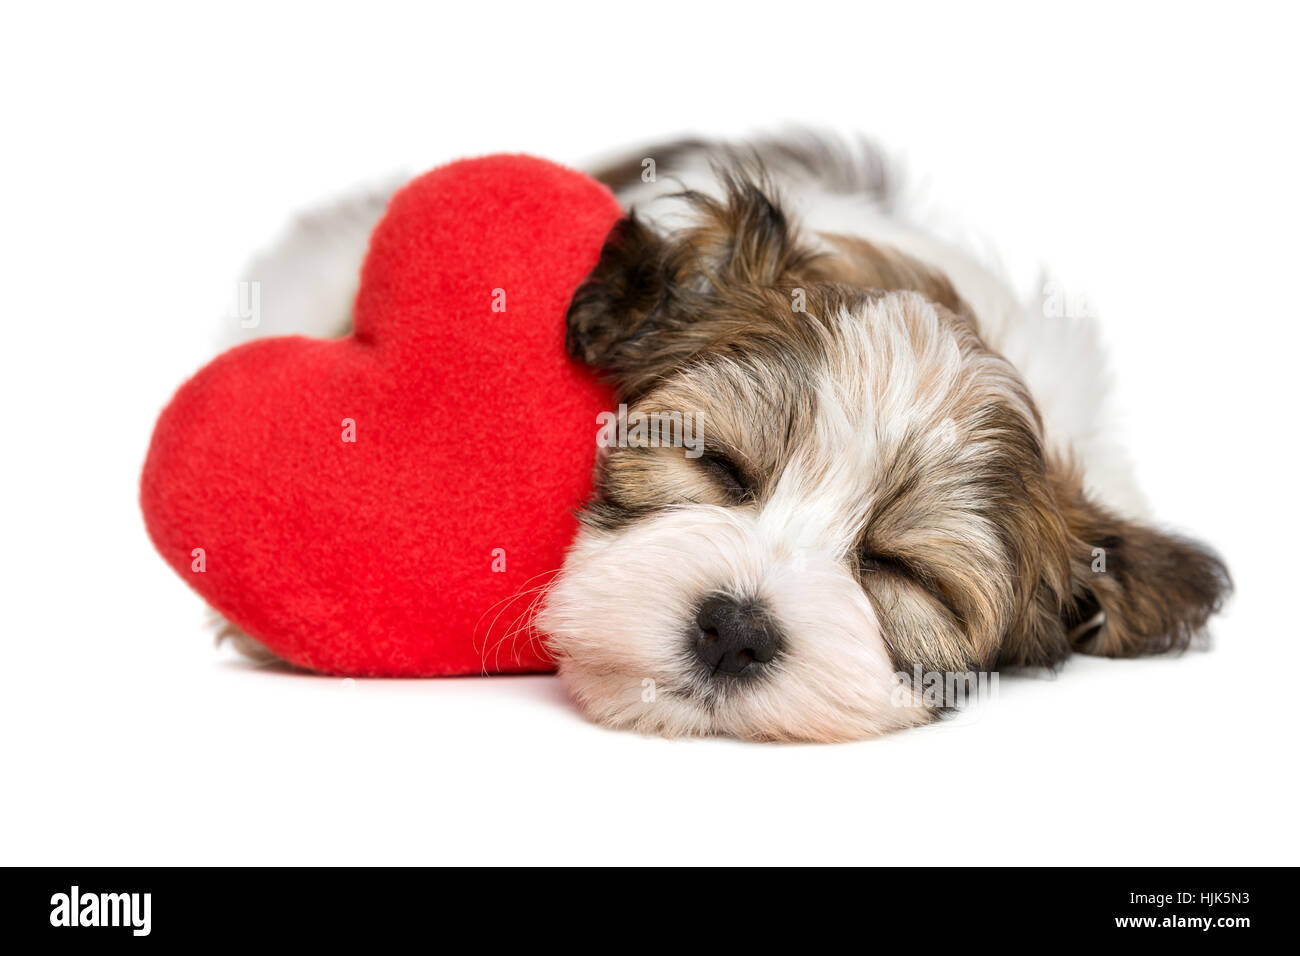 Lover Valentine Havanese puppy dog sleeping and dreaming with a red heart - Stock Image